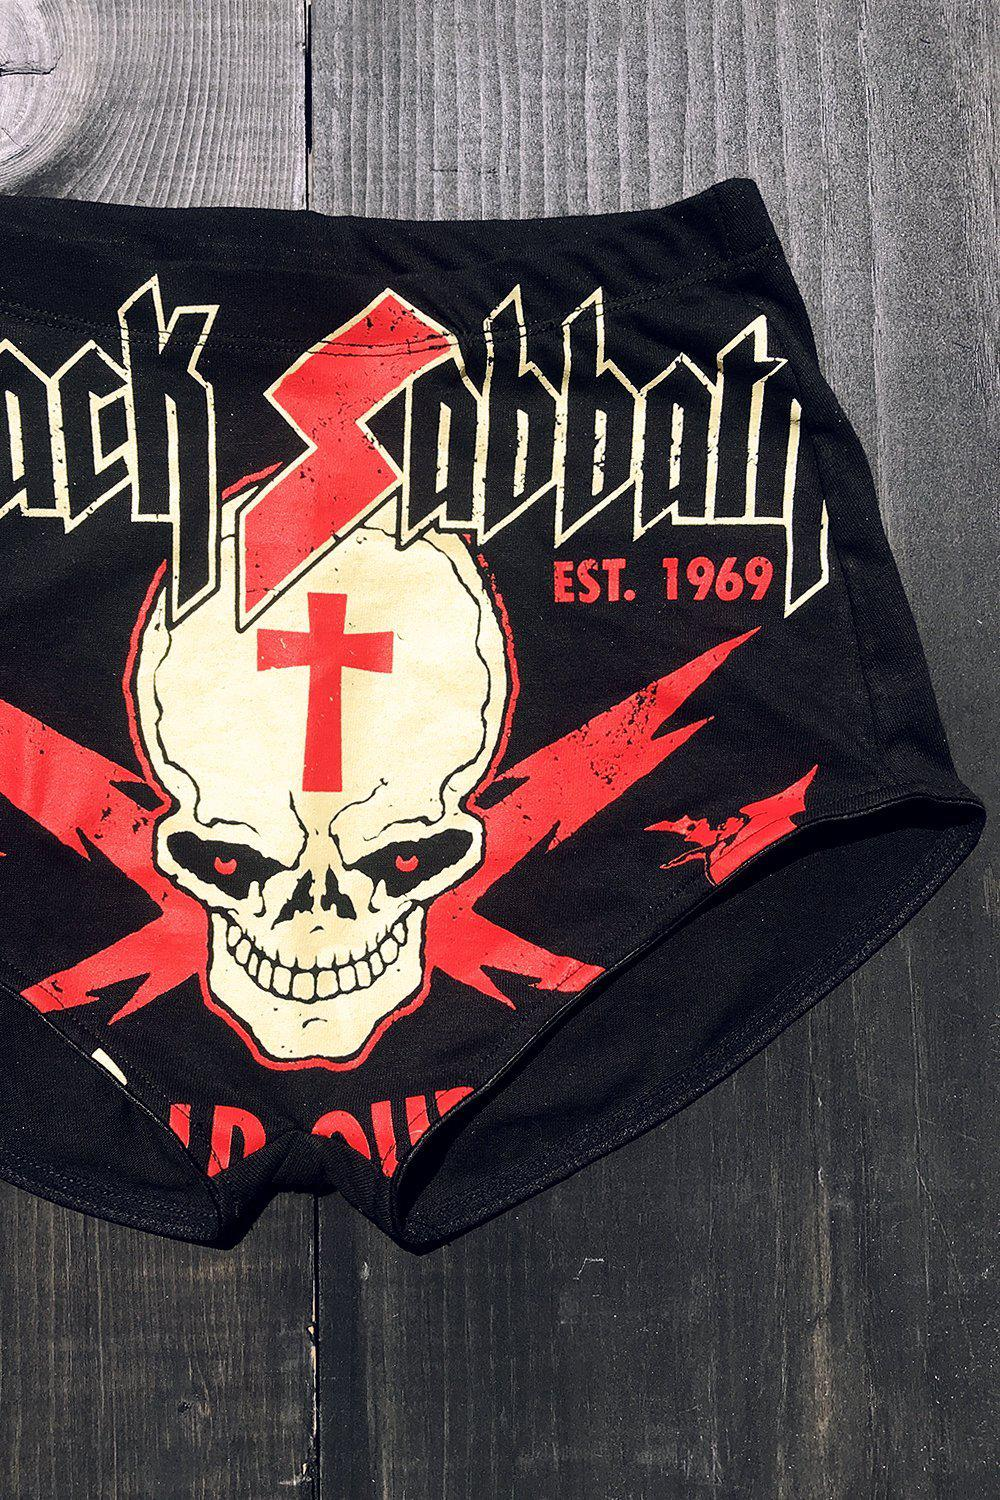 IN STOCK NOW Black Sabbath T-Shirt Shorts・Size S